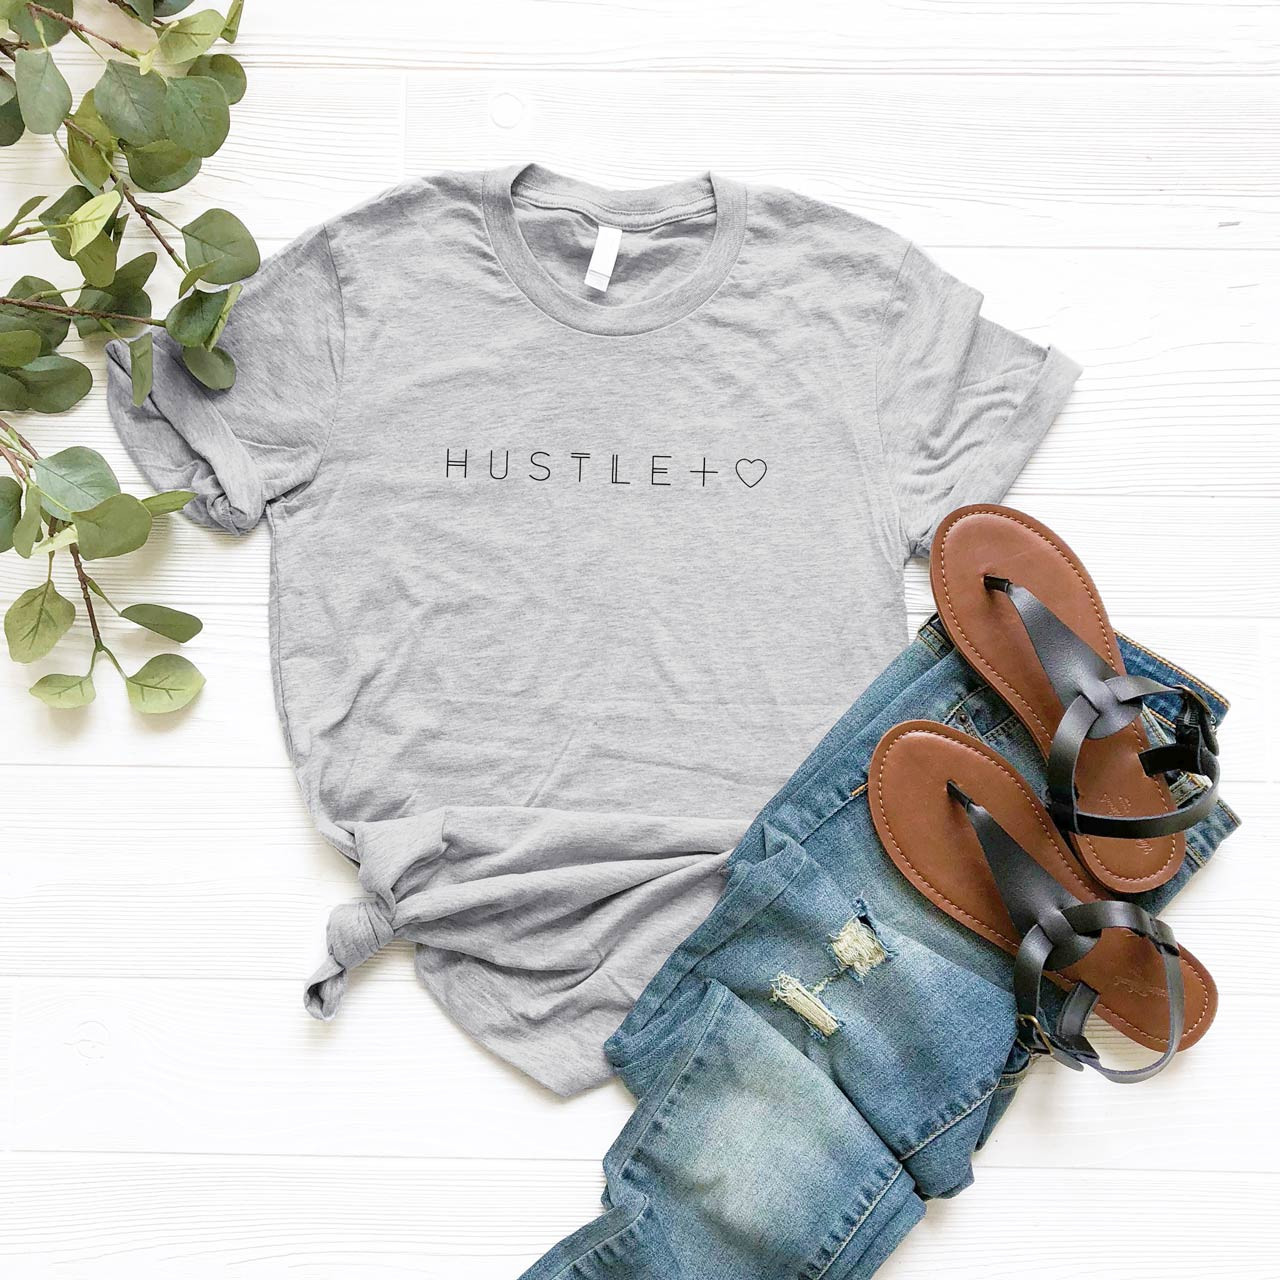 HUSTLE + HEART Cotton T-Shirt (Black on Gray) from The Printed Home